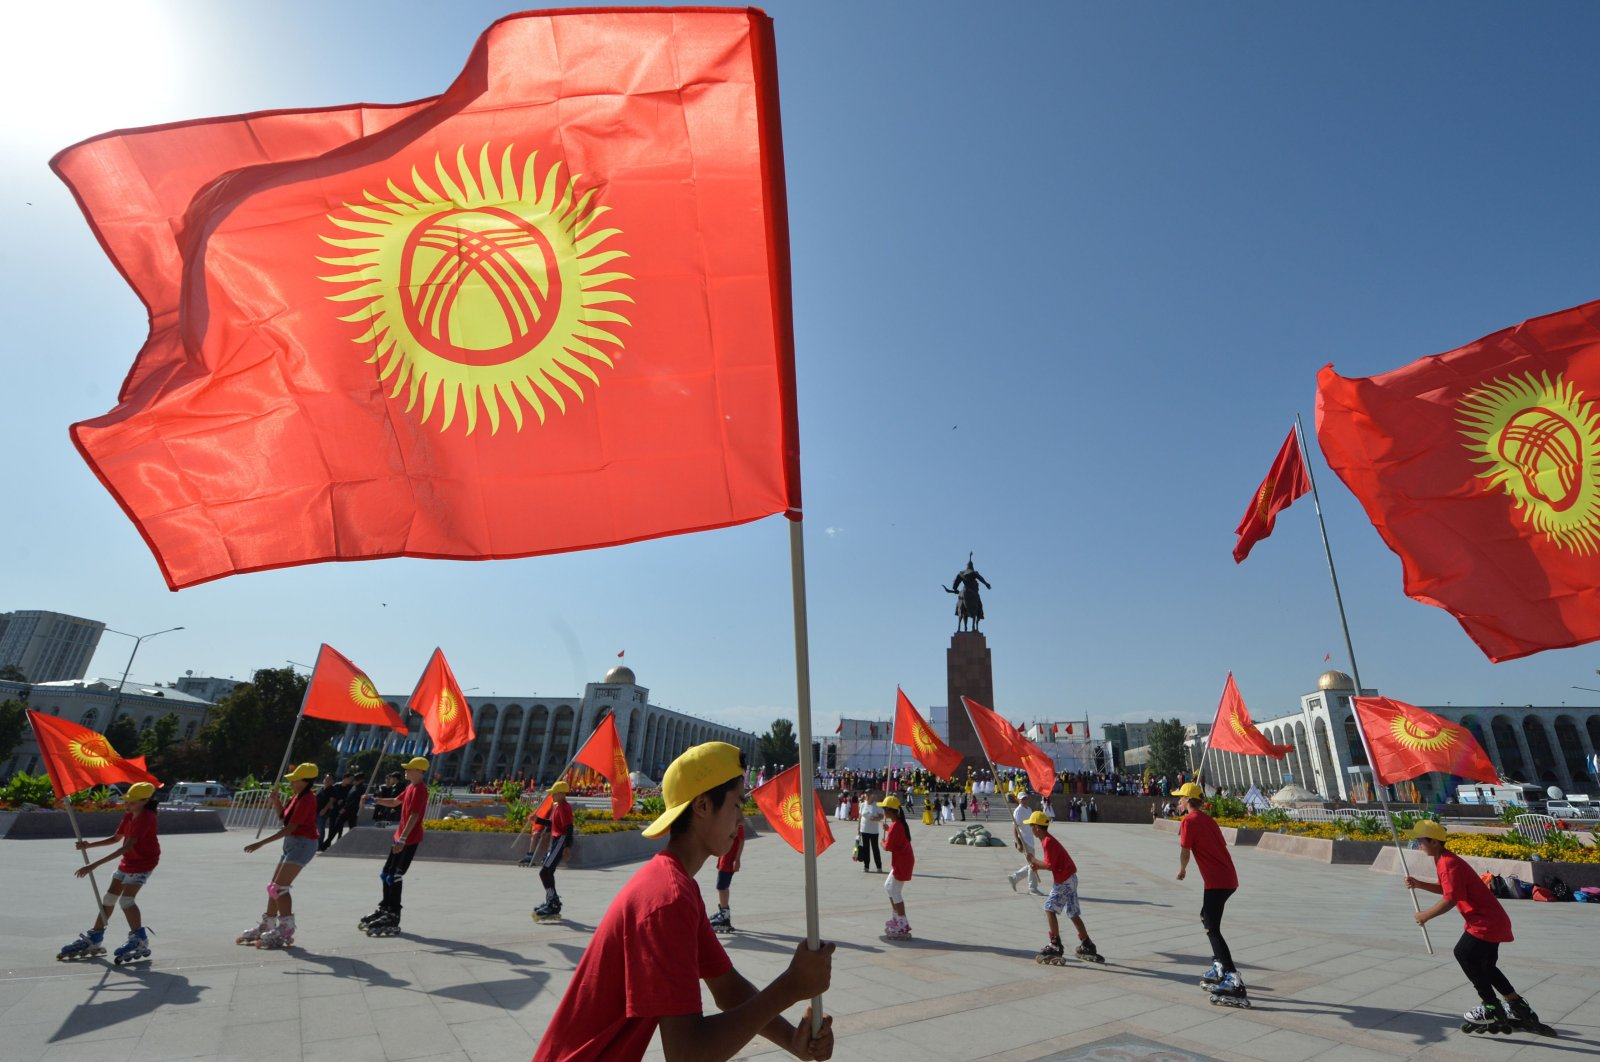 Kyrgyz dancers wave flags as they perform during the celebrations marking the 28th anniversary of Kyrgyzstan's independence from the Soviet Union at the Ala-Too square in Bishkek on August 31, 2019. (AFP Photo)